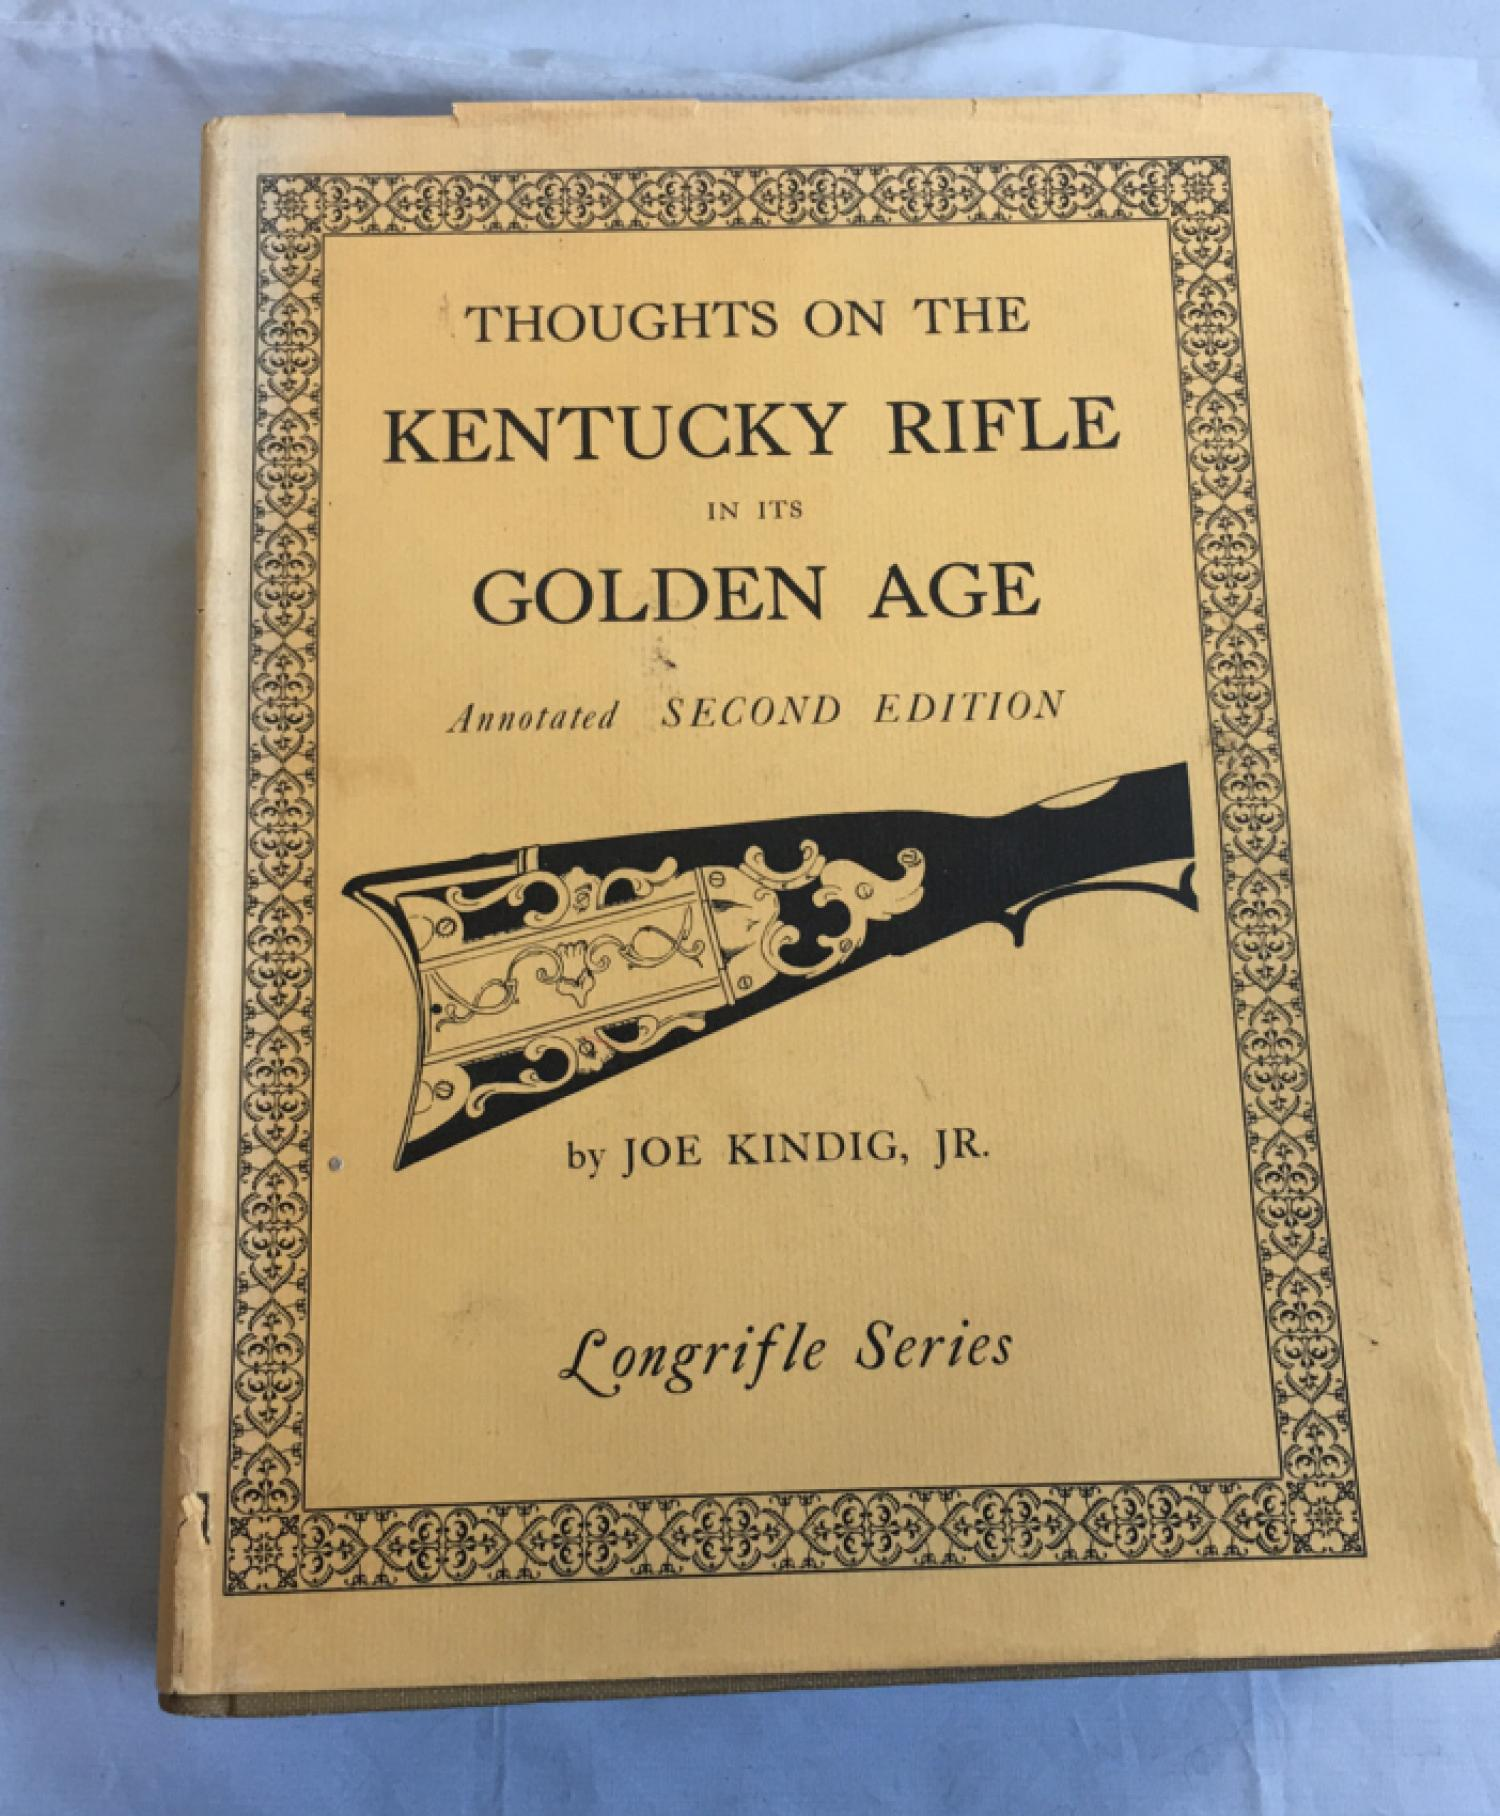 Thoughts on the Kentucky Rifle 2nd ed by Joe Kindig Jr